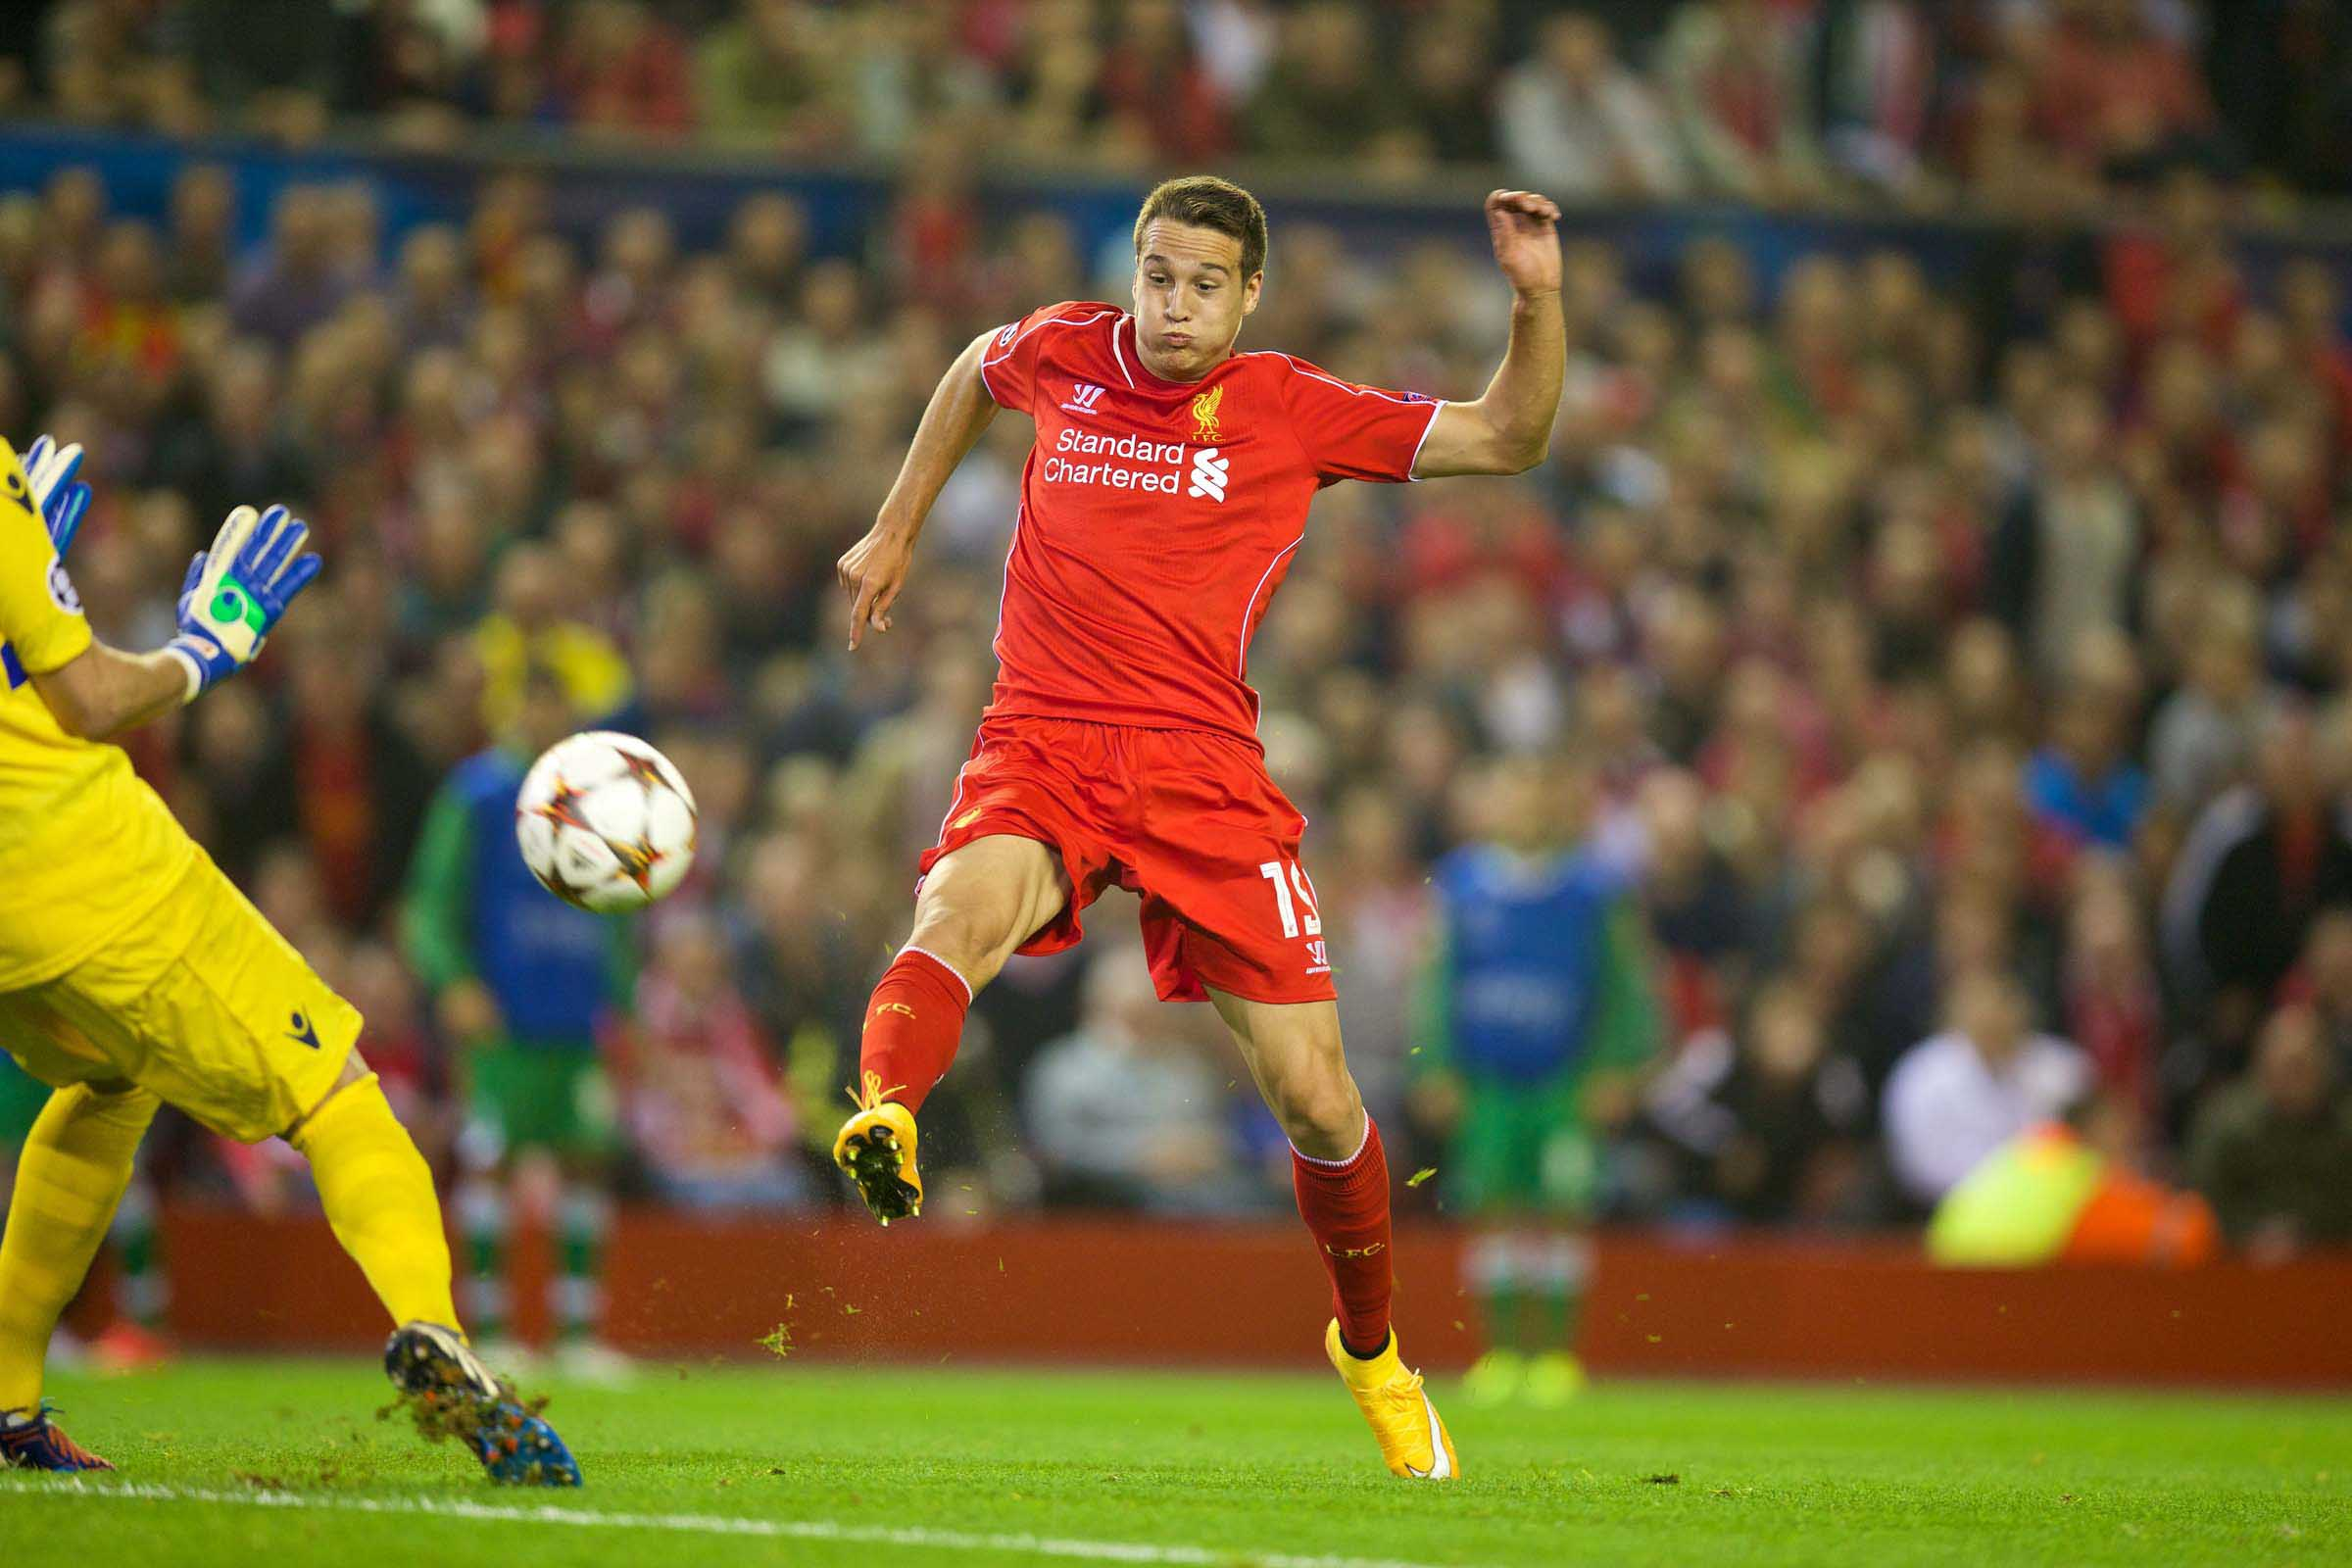 JAVIER MANQUILLO: A LESSON FROM HISTORY